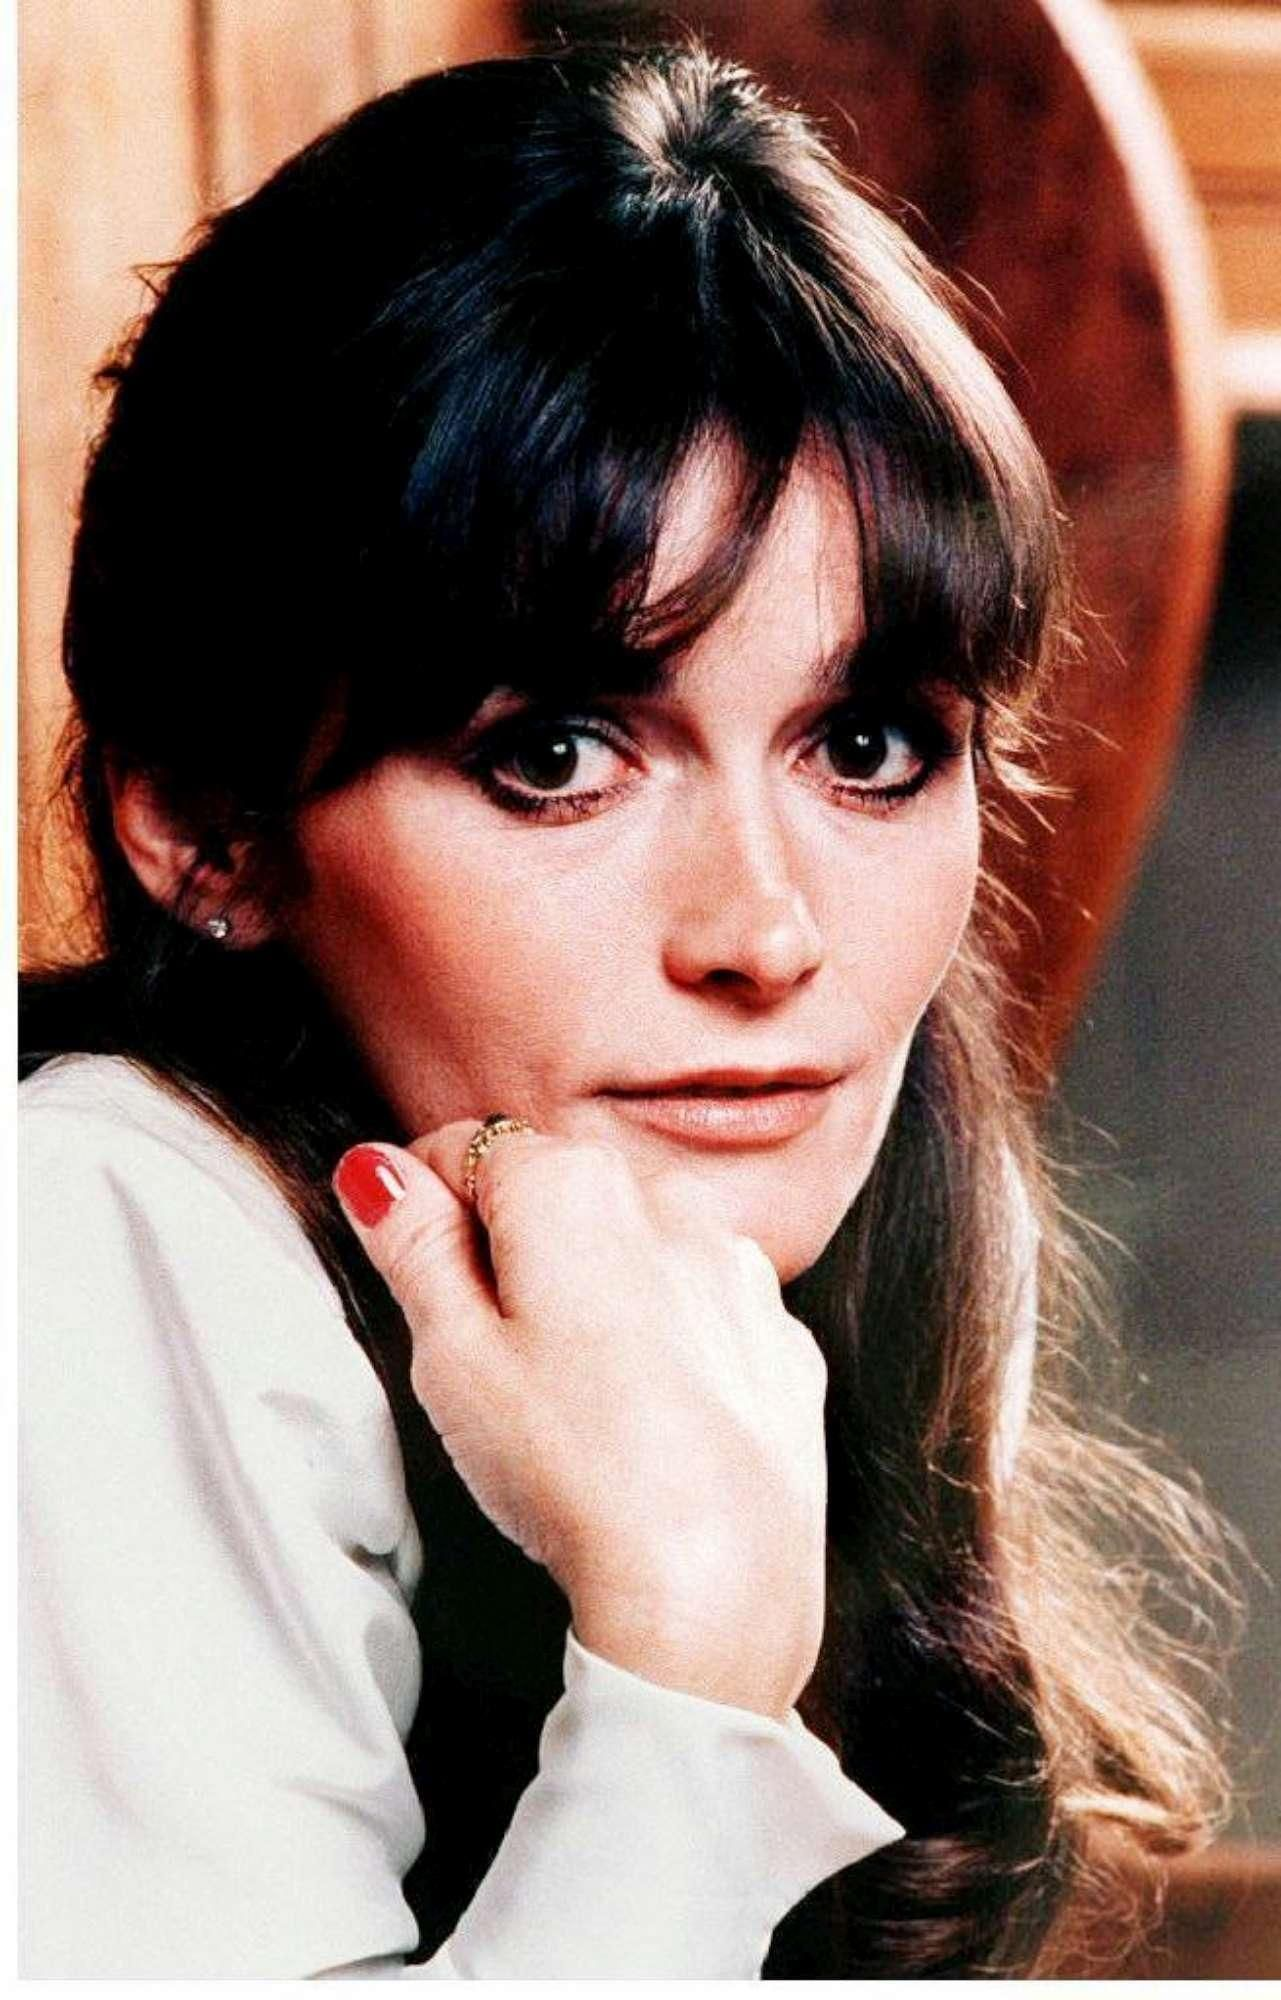 E' morta a 69 anni Margot Kidder, la bellissima Lois Lane di Superman